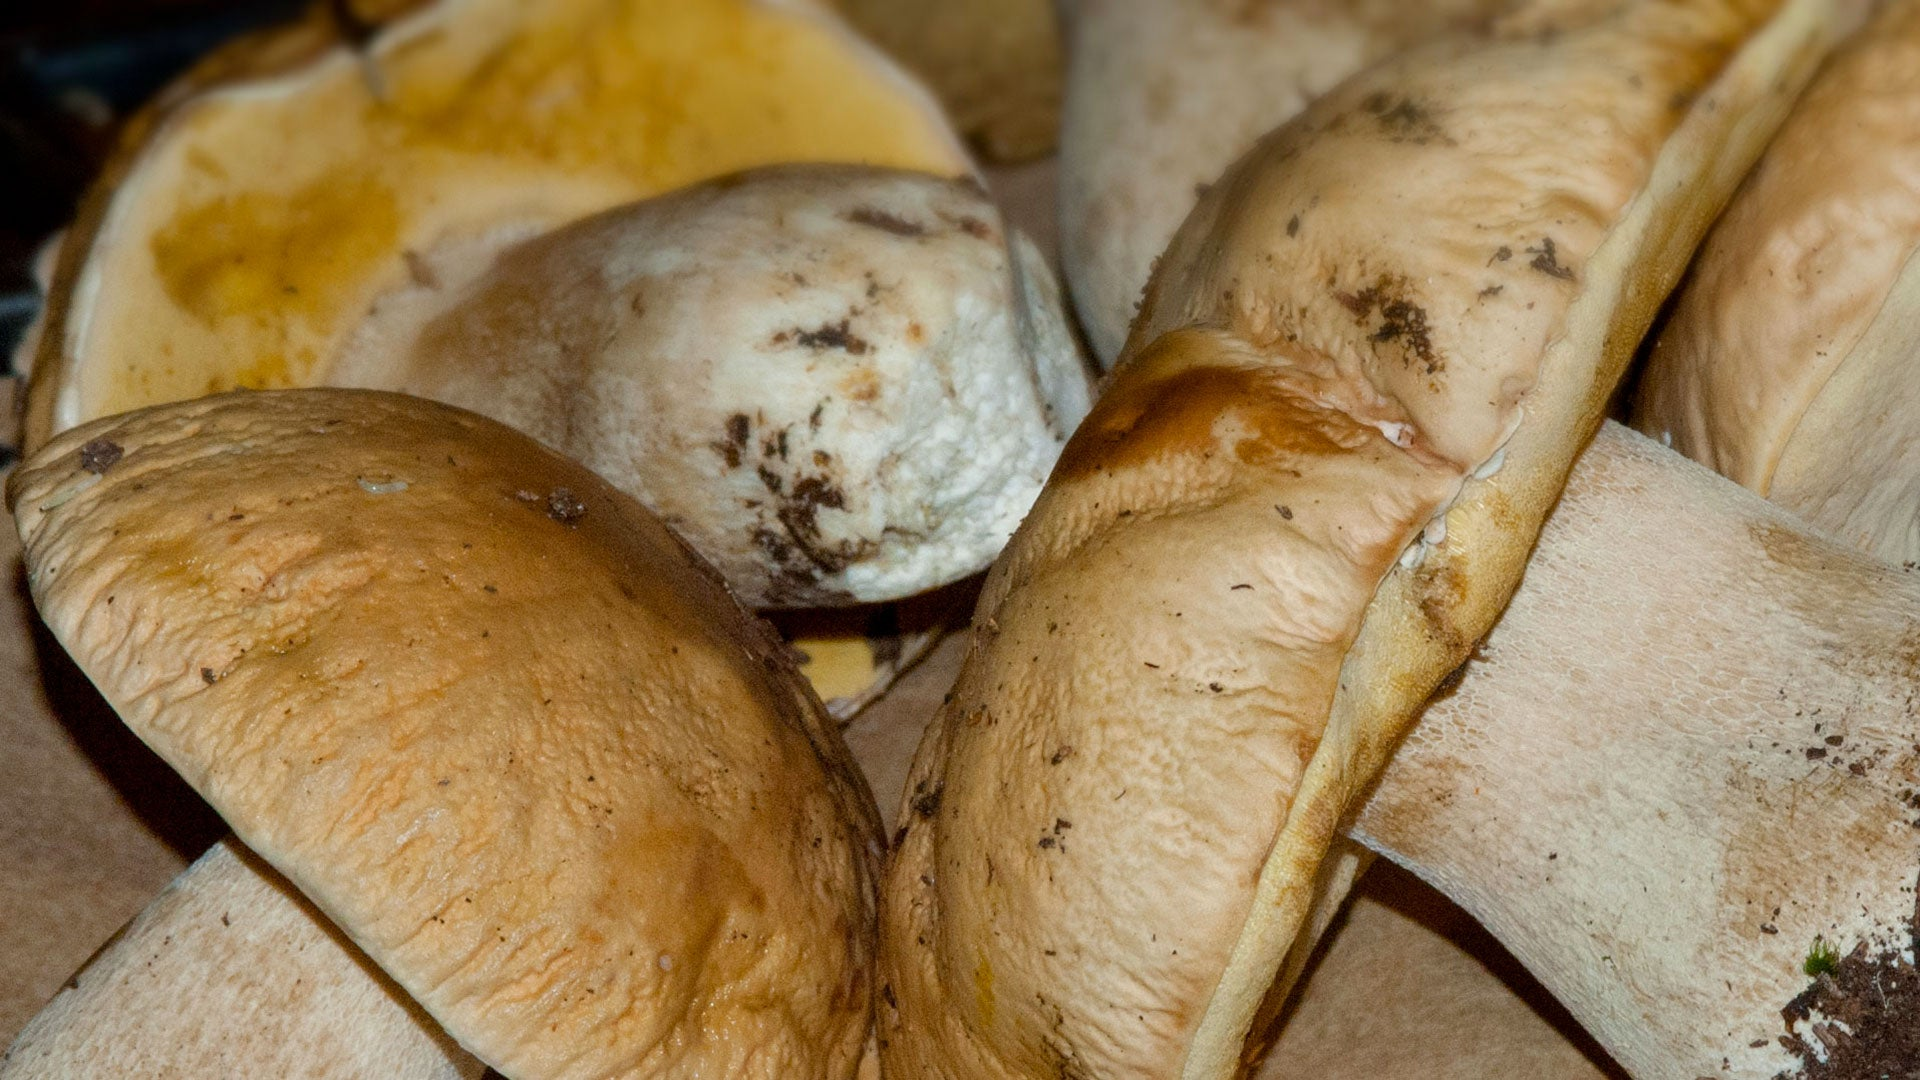 What kind of mushrooms are on the properties and characteristics